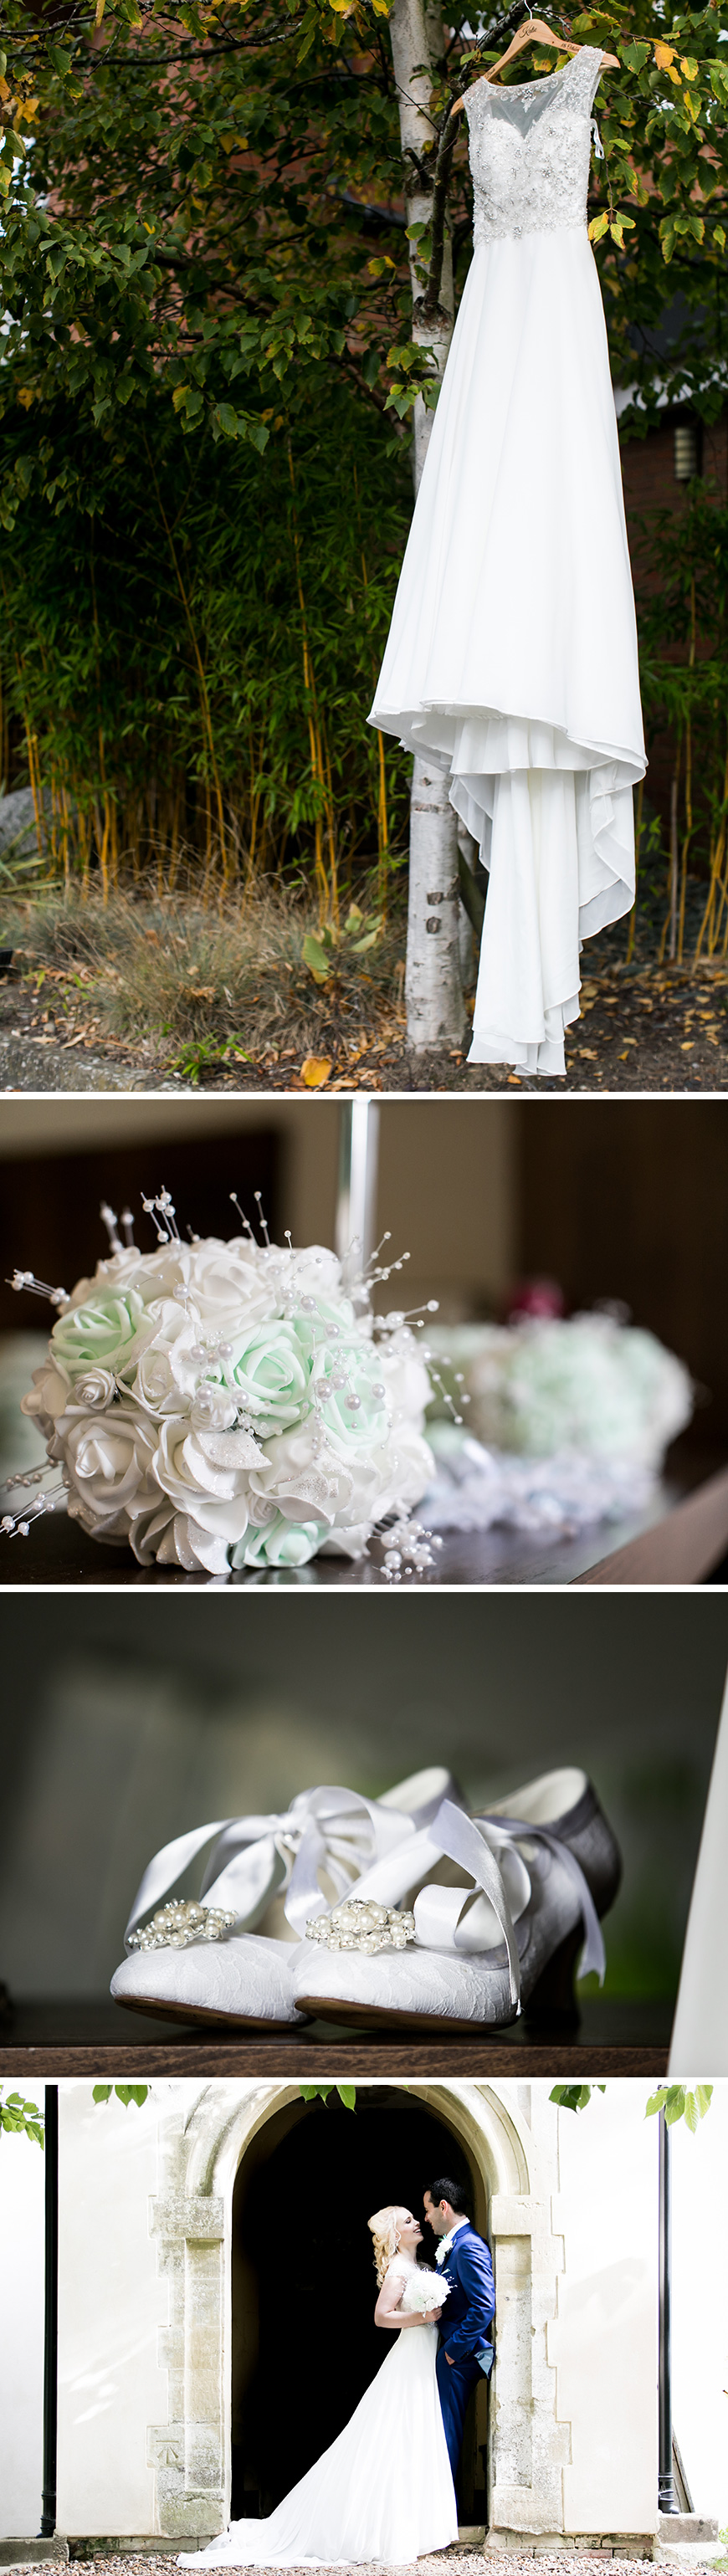 Real Wedding - Katie and Mariano's Rustic Autumn Wedding at Wasing Park | CHWV